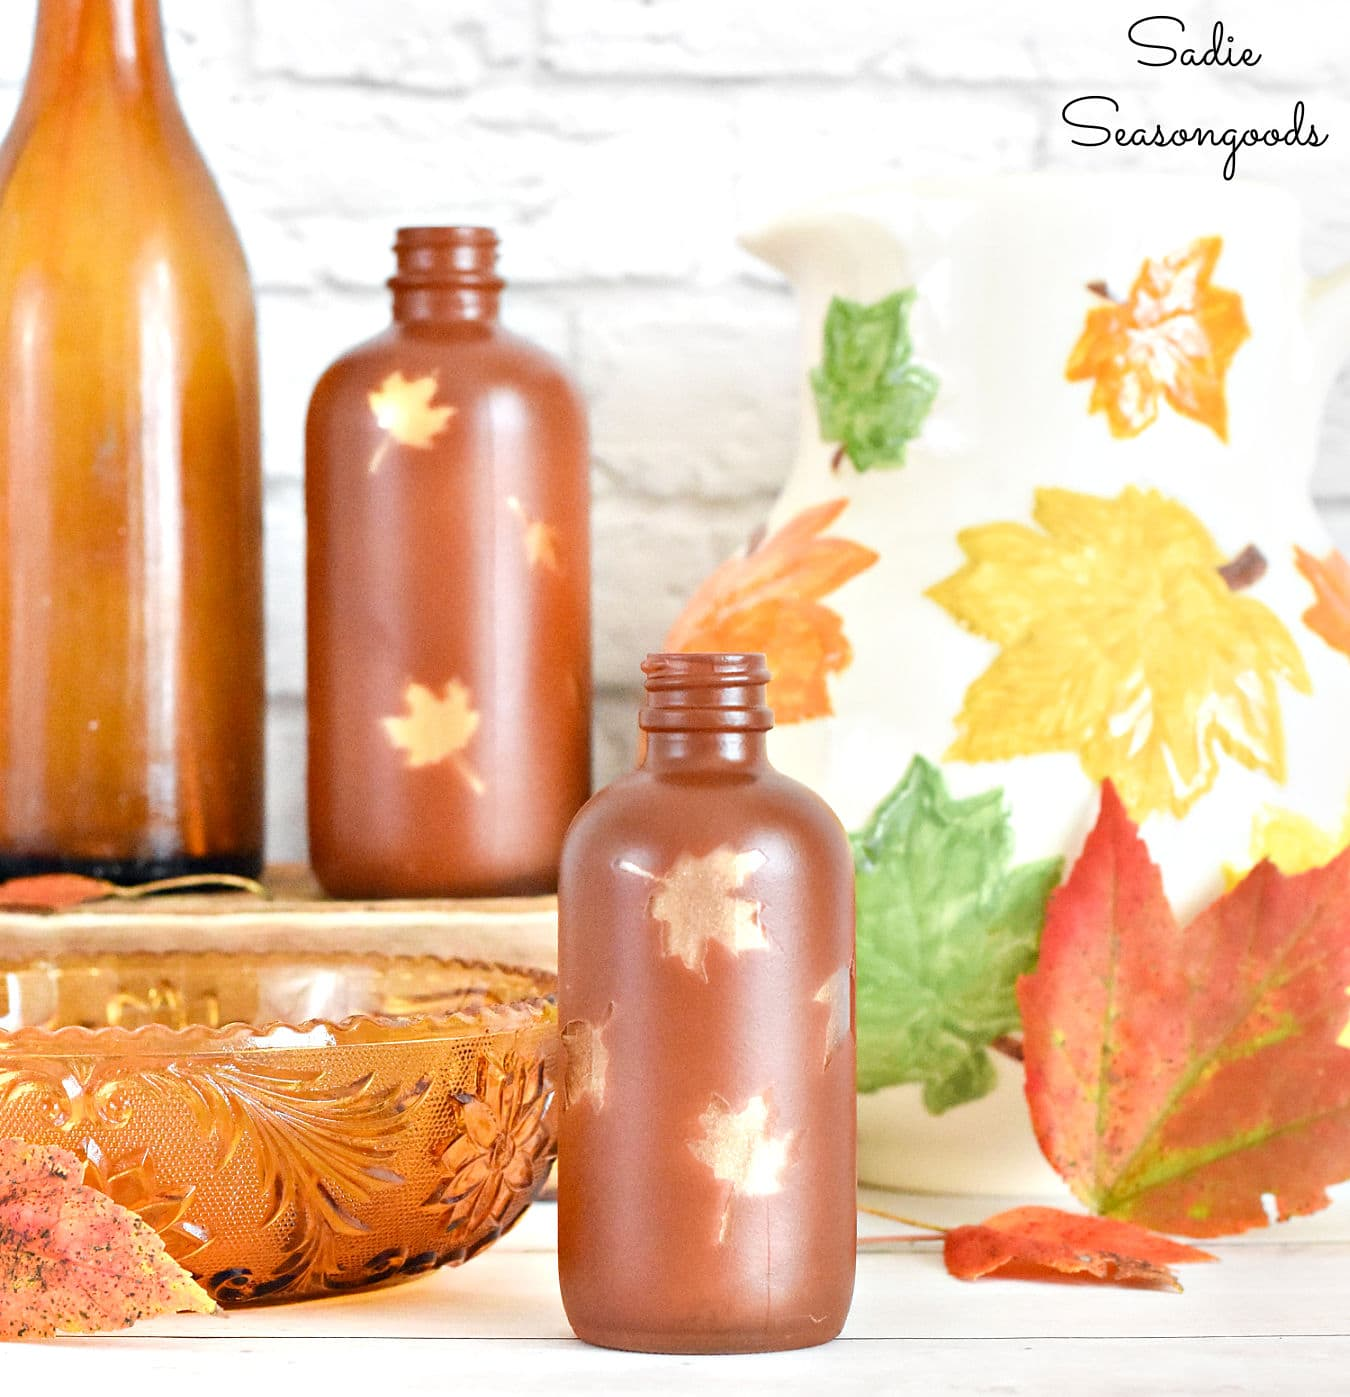 Decorating for Fall with Amber Glass Bottles